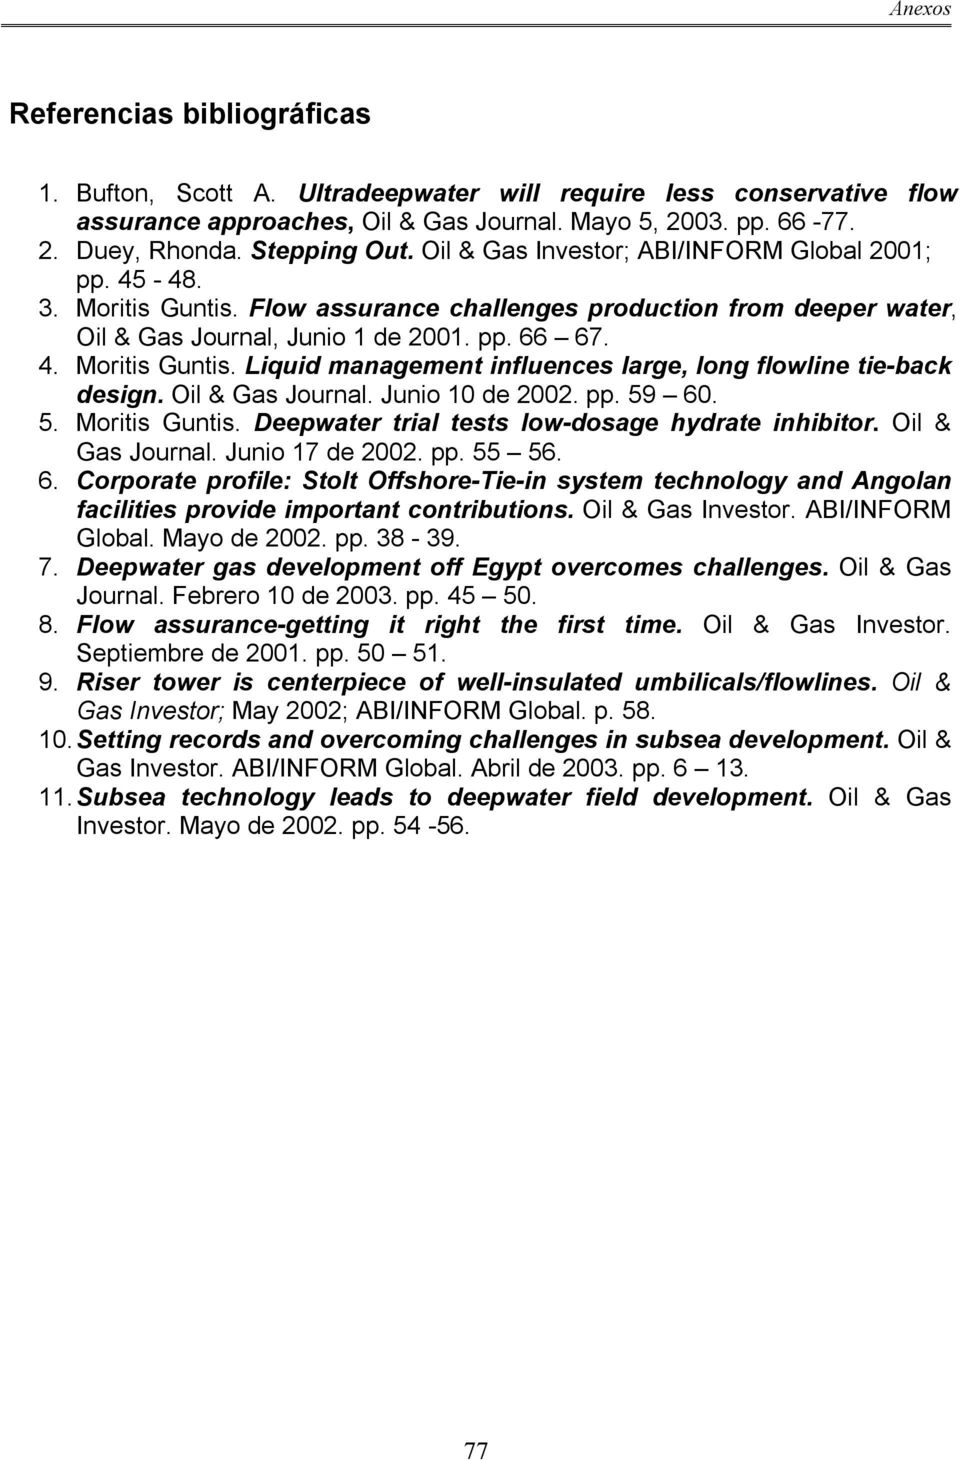 Oil & Gas Journal. Junio 10 de 2002. pp. 59 60. 5. Moritis Guntis. Deepwater trial tests low-dosage hydrate inhibitor. Oil & Gas Journal. Junio 17 de 2002. pp. 55 56. 6. Corporate profile: Stolt Offshore-Tie-in system technology and Angolan facilities provide important contributions.